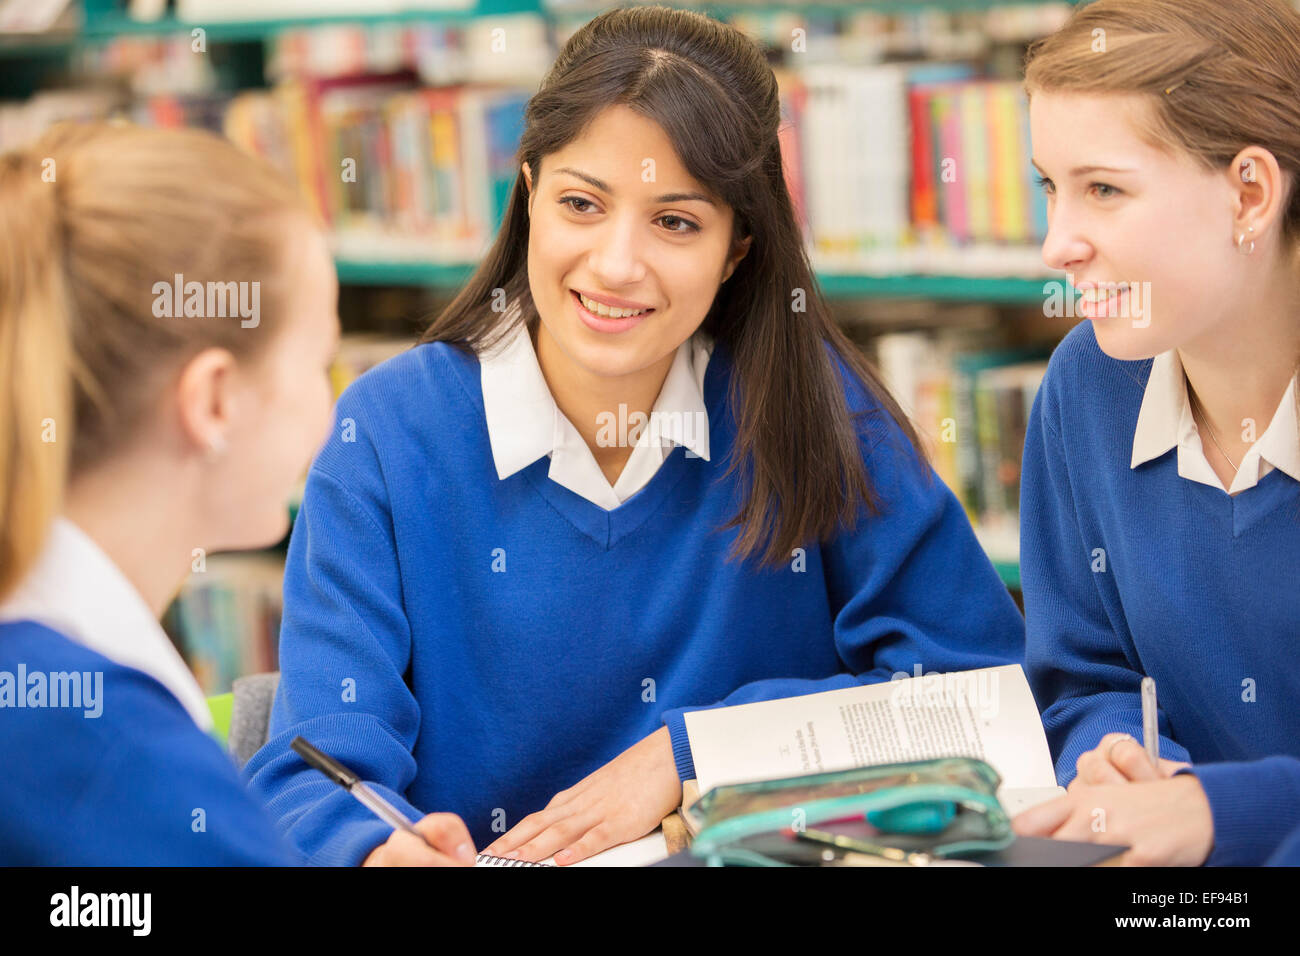 Three female students sitting in library and smiling - Stock Image